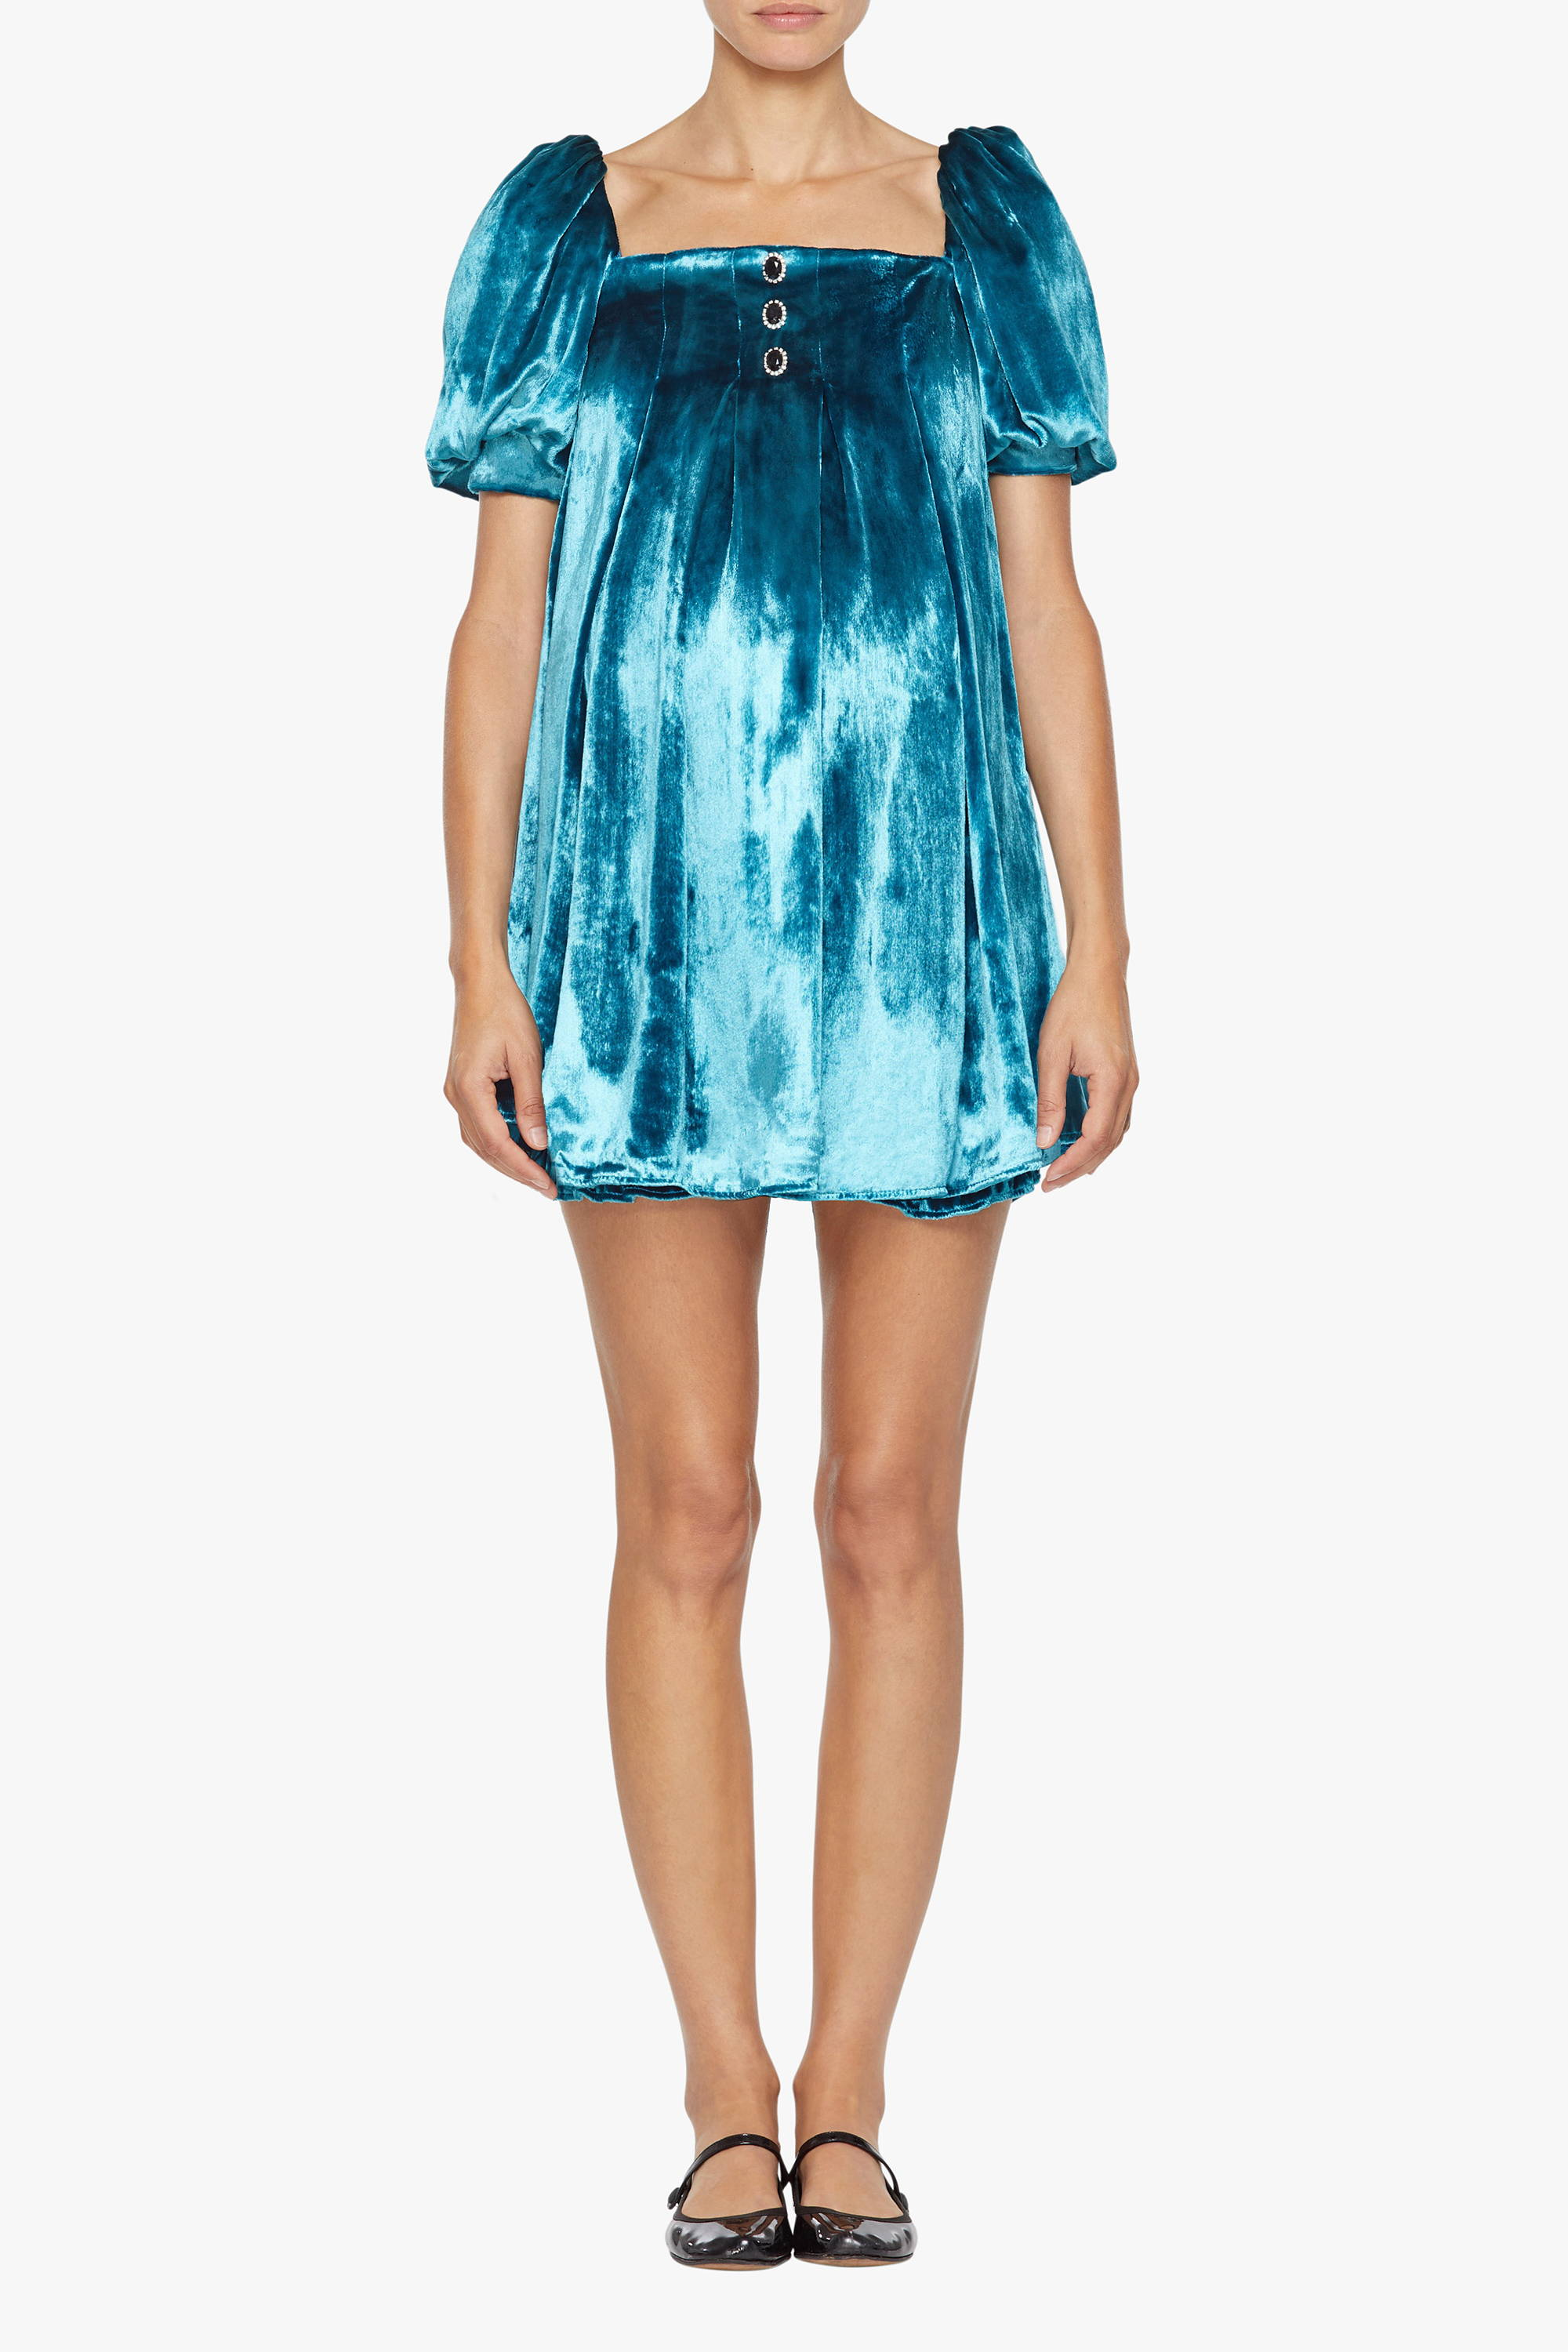 The maternity friendly Sunset dress in turquoise velvet